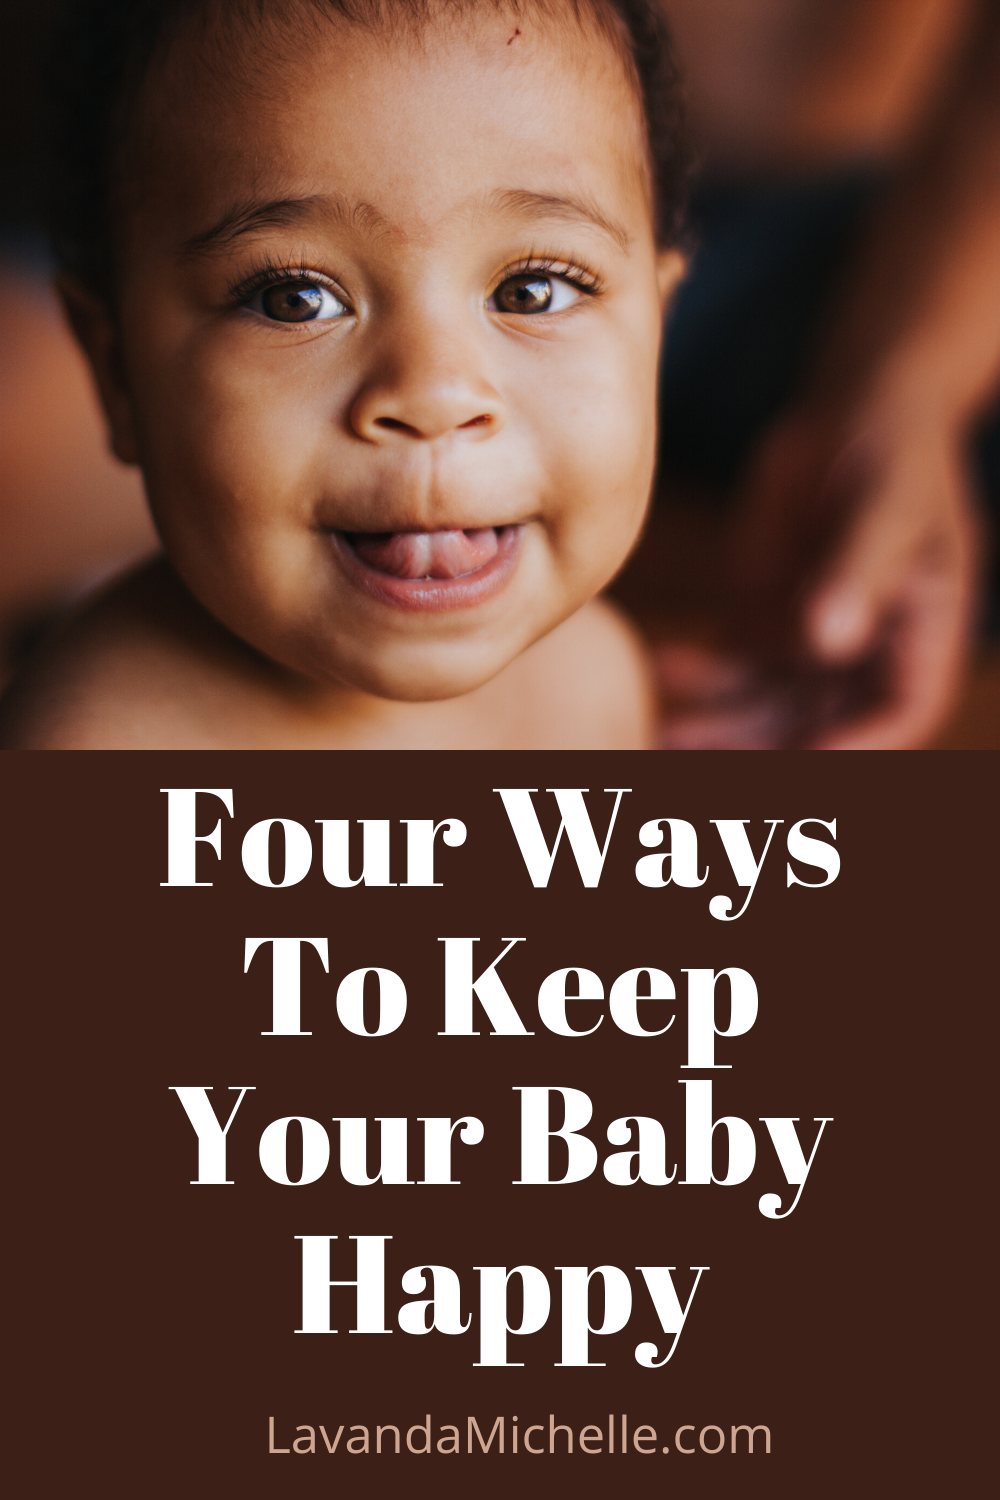 Four Ways To Keep Your Baby Happy